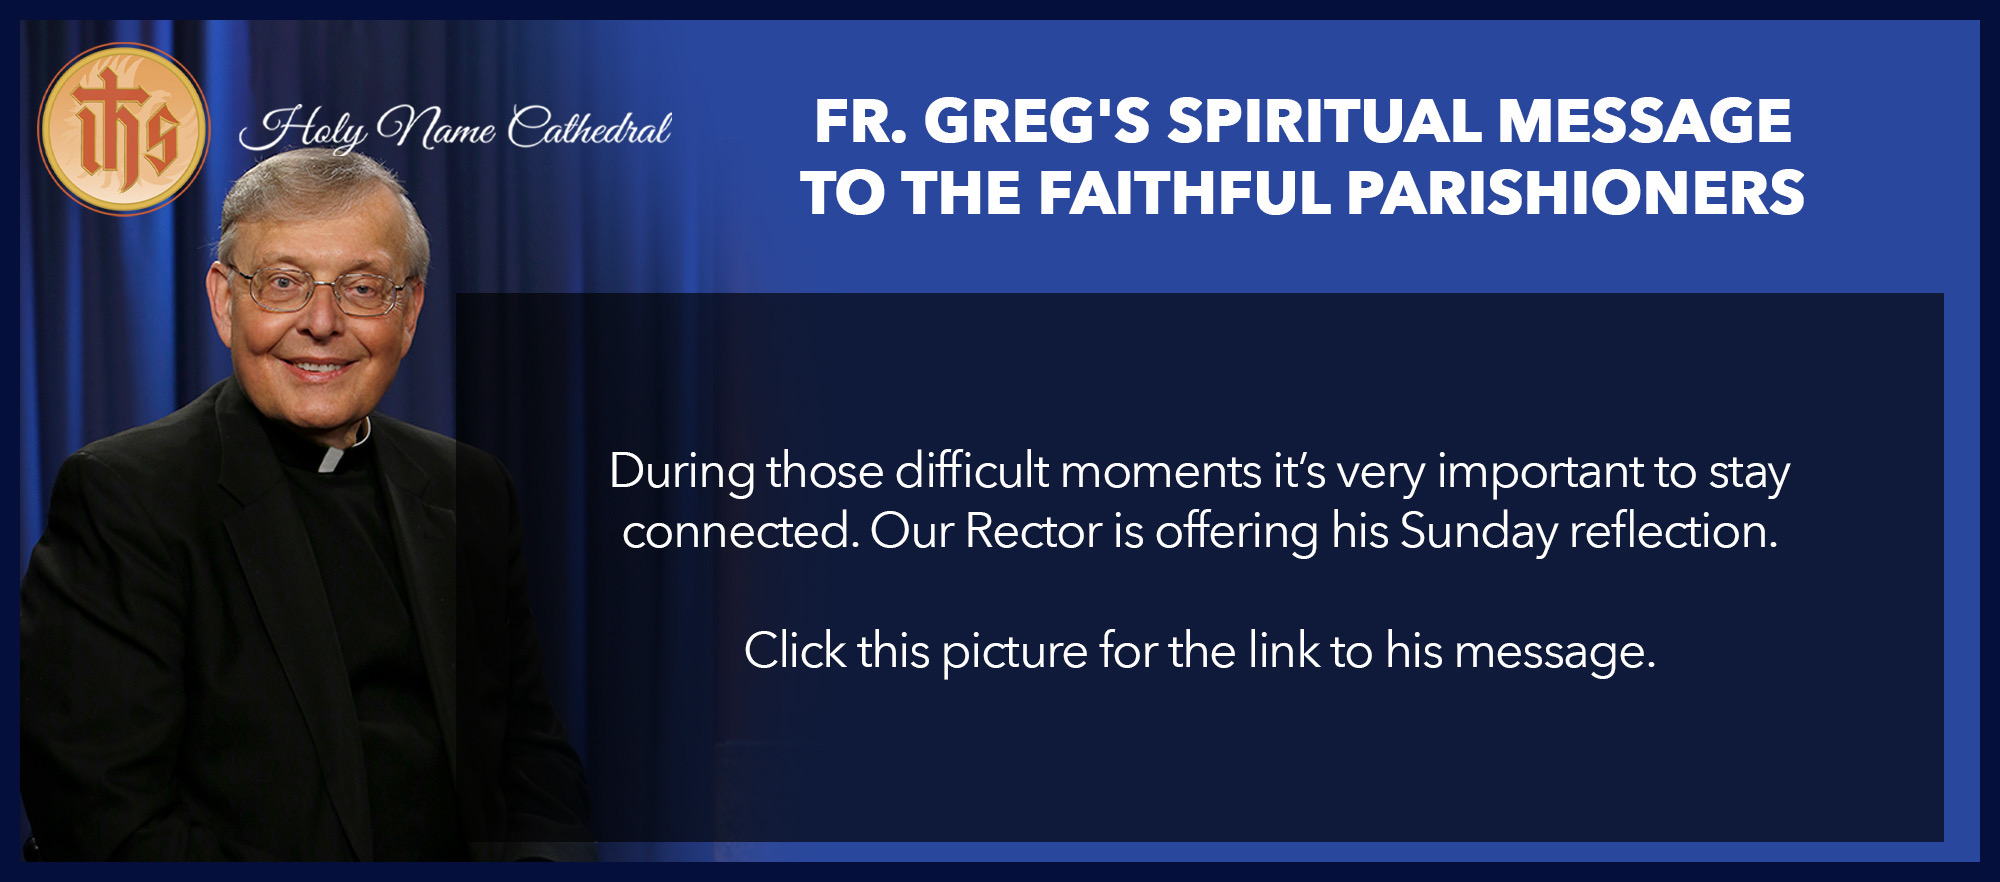 Fr. Greg Spiritual Message